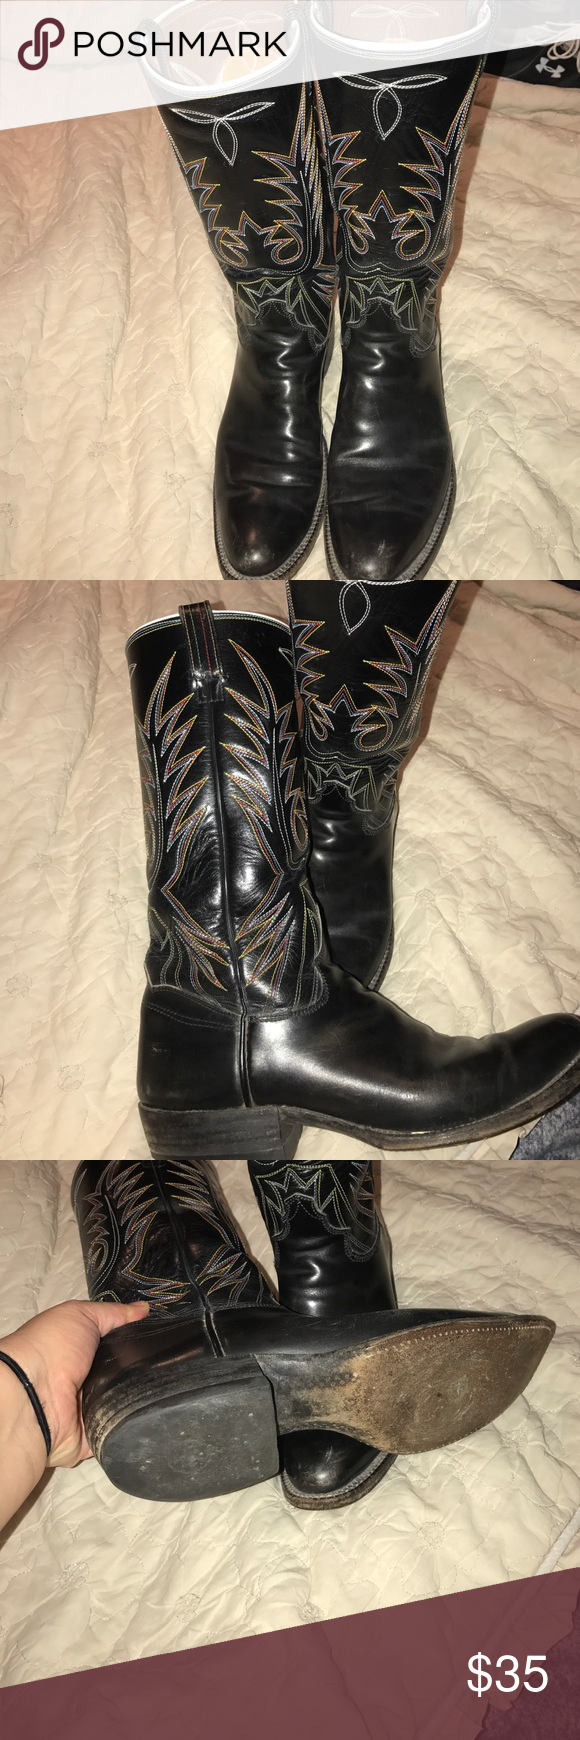 a4b8087d053 Biltrite neoprene boots Beautiful western boots in excellent used ...